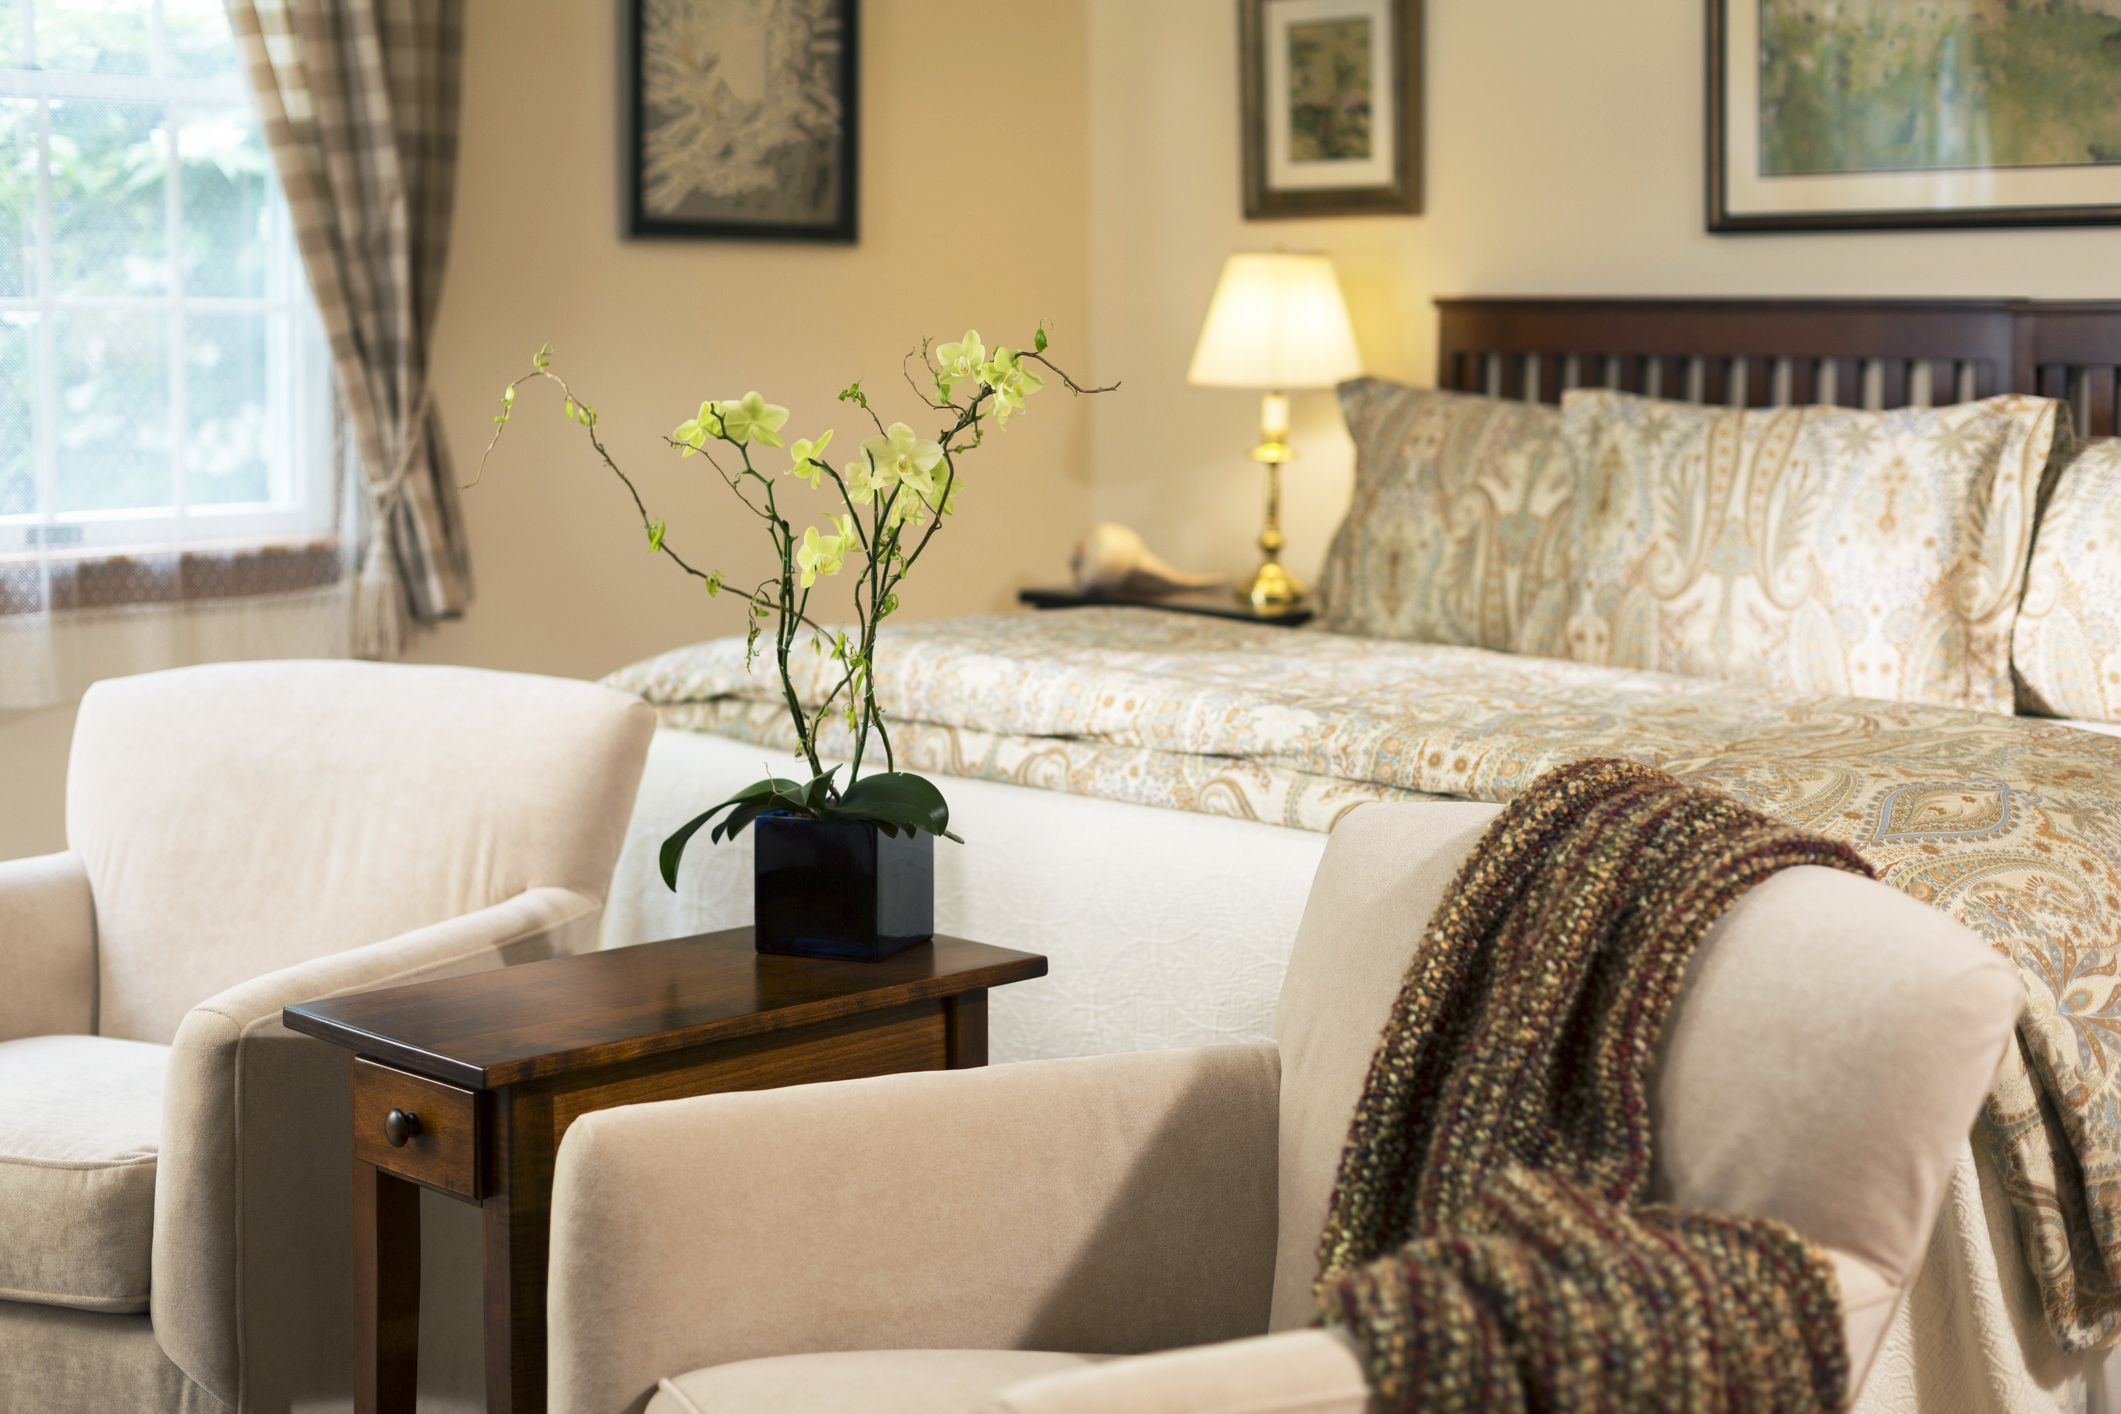 https bedding lovetoknow com about bedding what color bedding goes beige walls